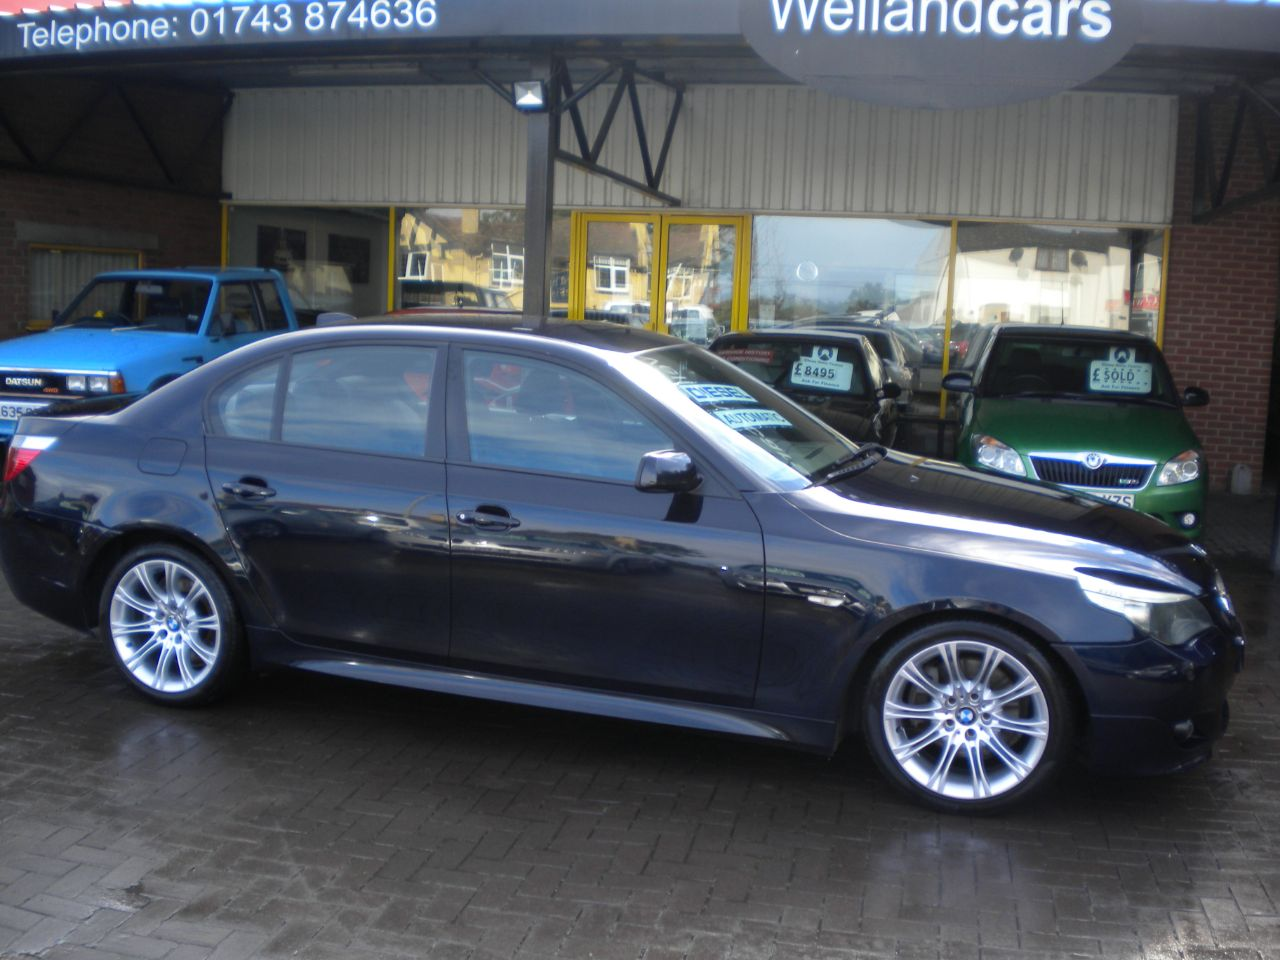 BMW 5 Series 3.0 530d Sport 4dr Auto, Leather, F/S/H,18`Alloys, 15 MONTH PARTS AND LABOUR WARRANTY INCLUDED Saloon Diesel Black at Welland Cars Shrewsbury